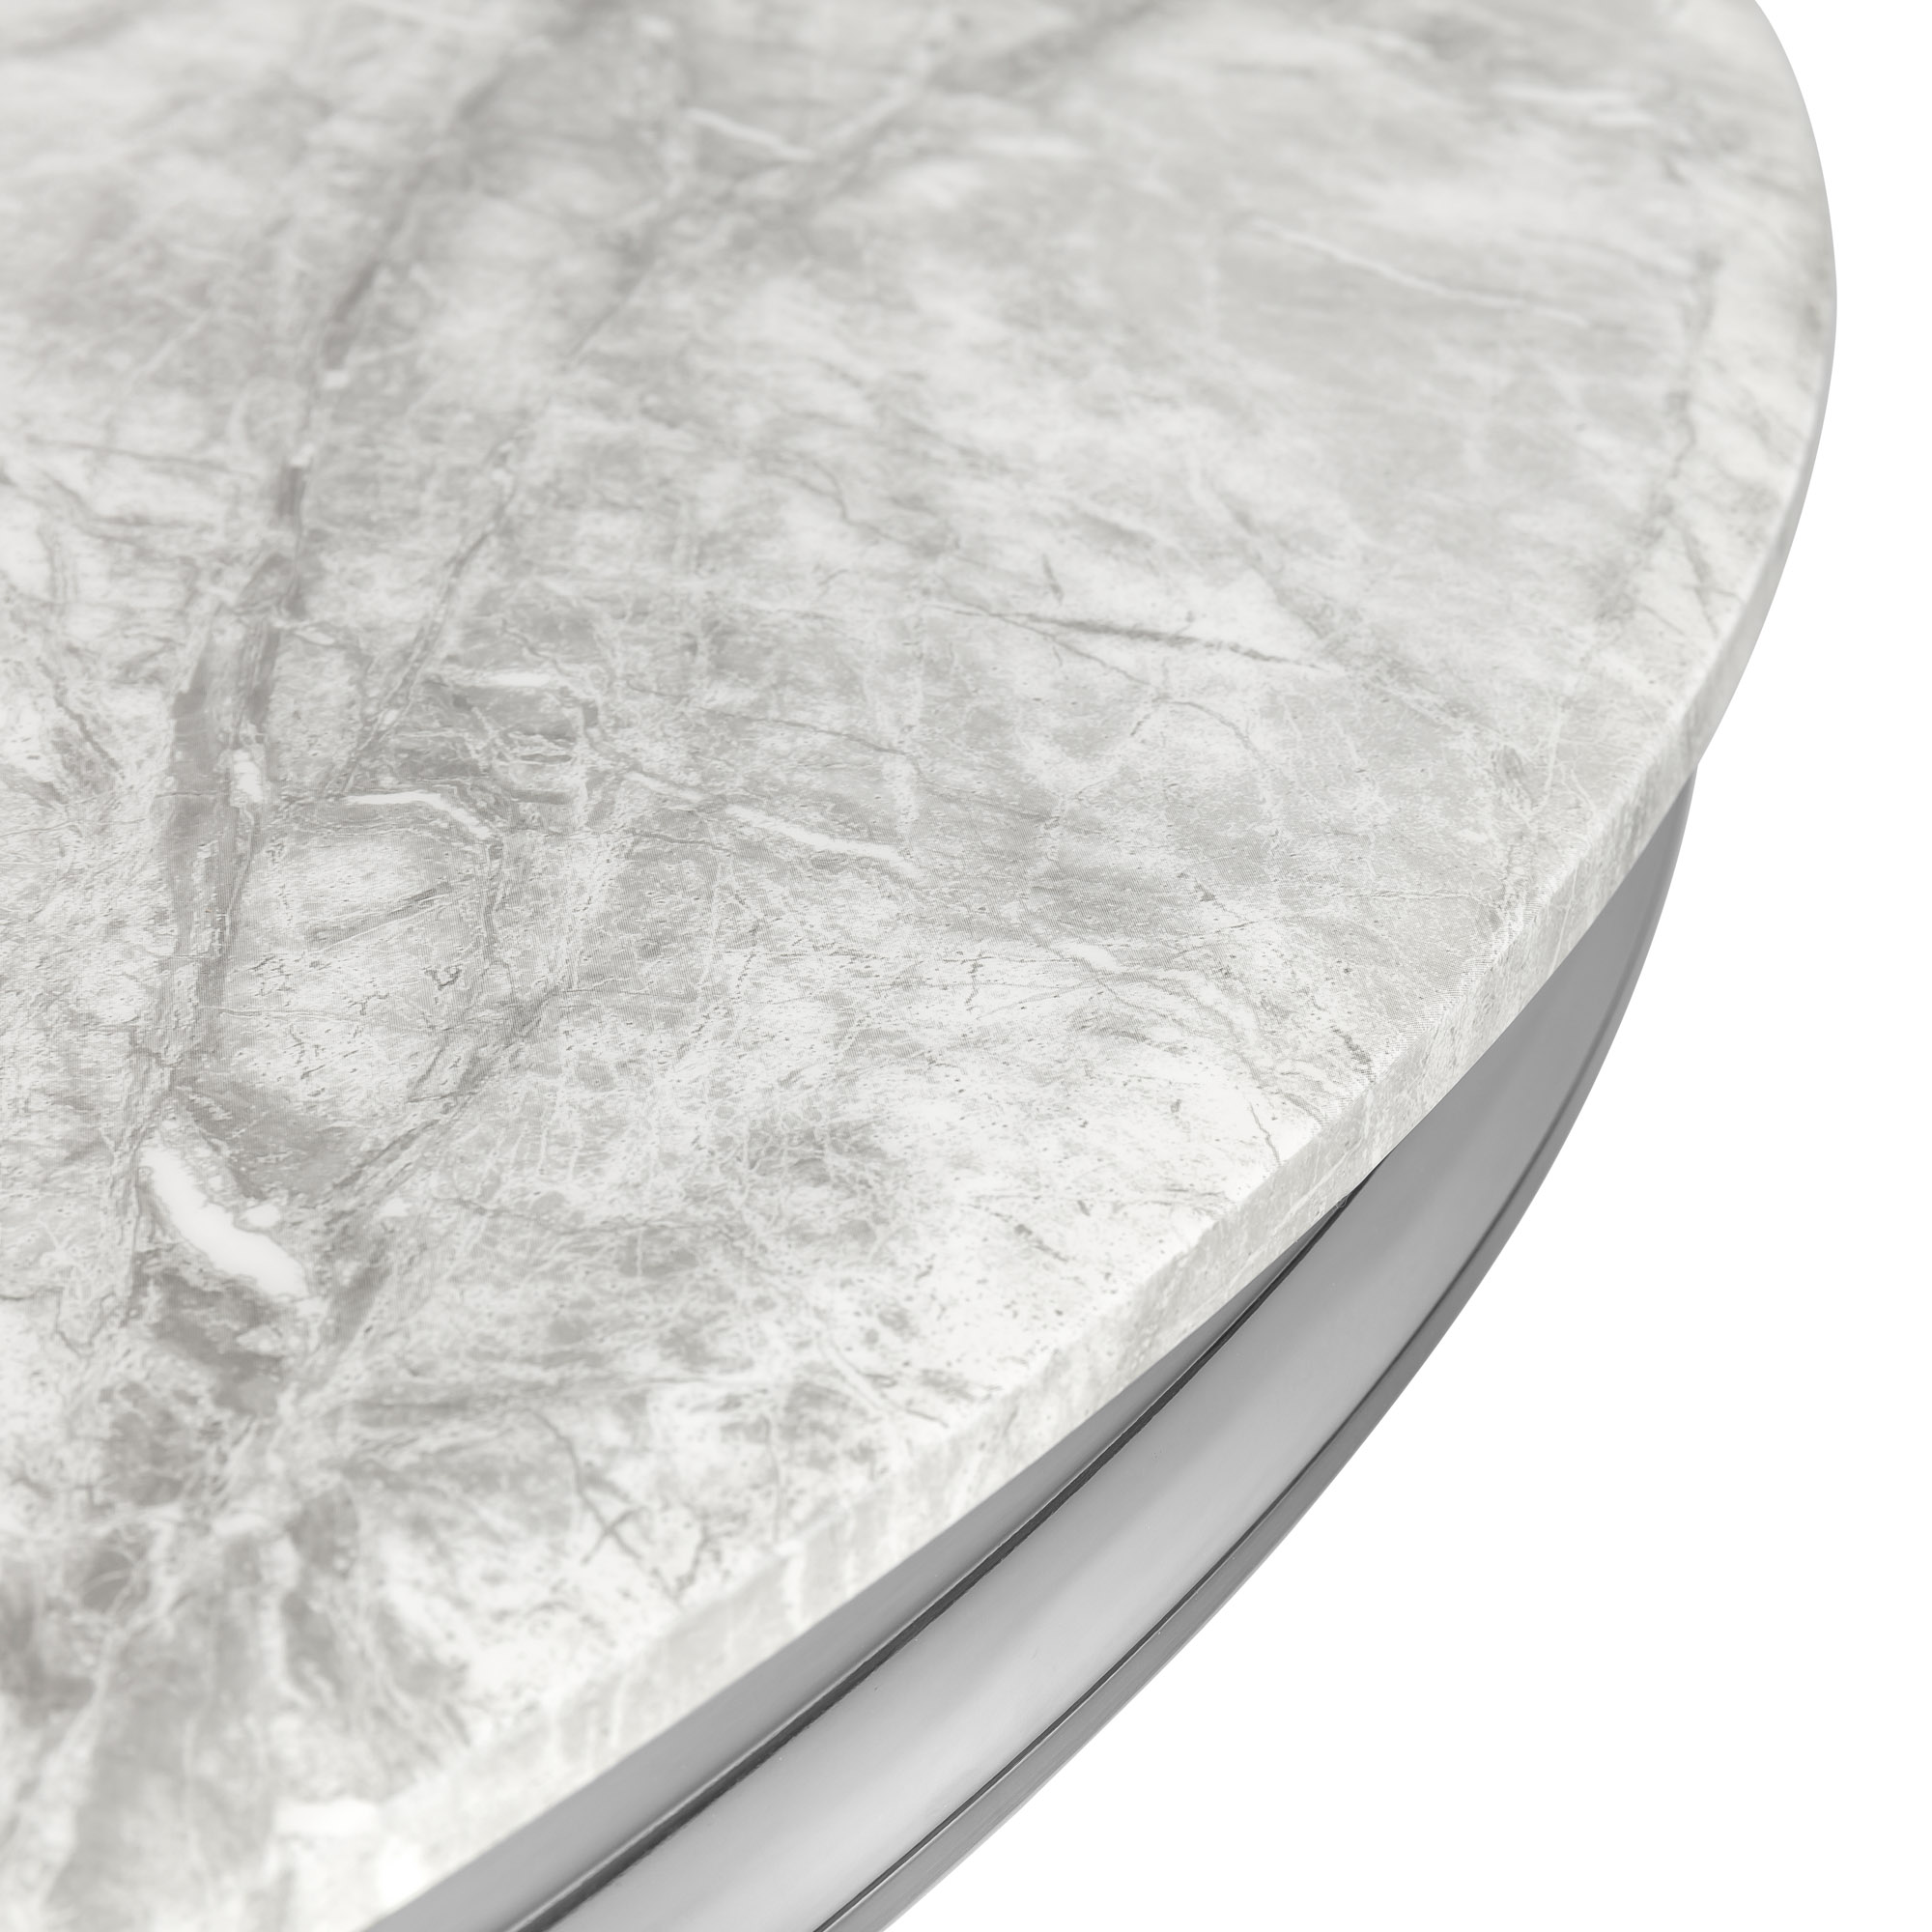 1.3M Polished Round Grey Marble Dining Room Table With Stainless Steel Frame